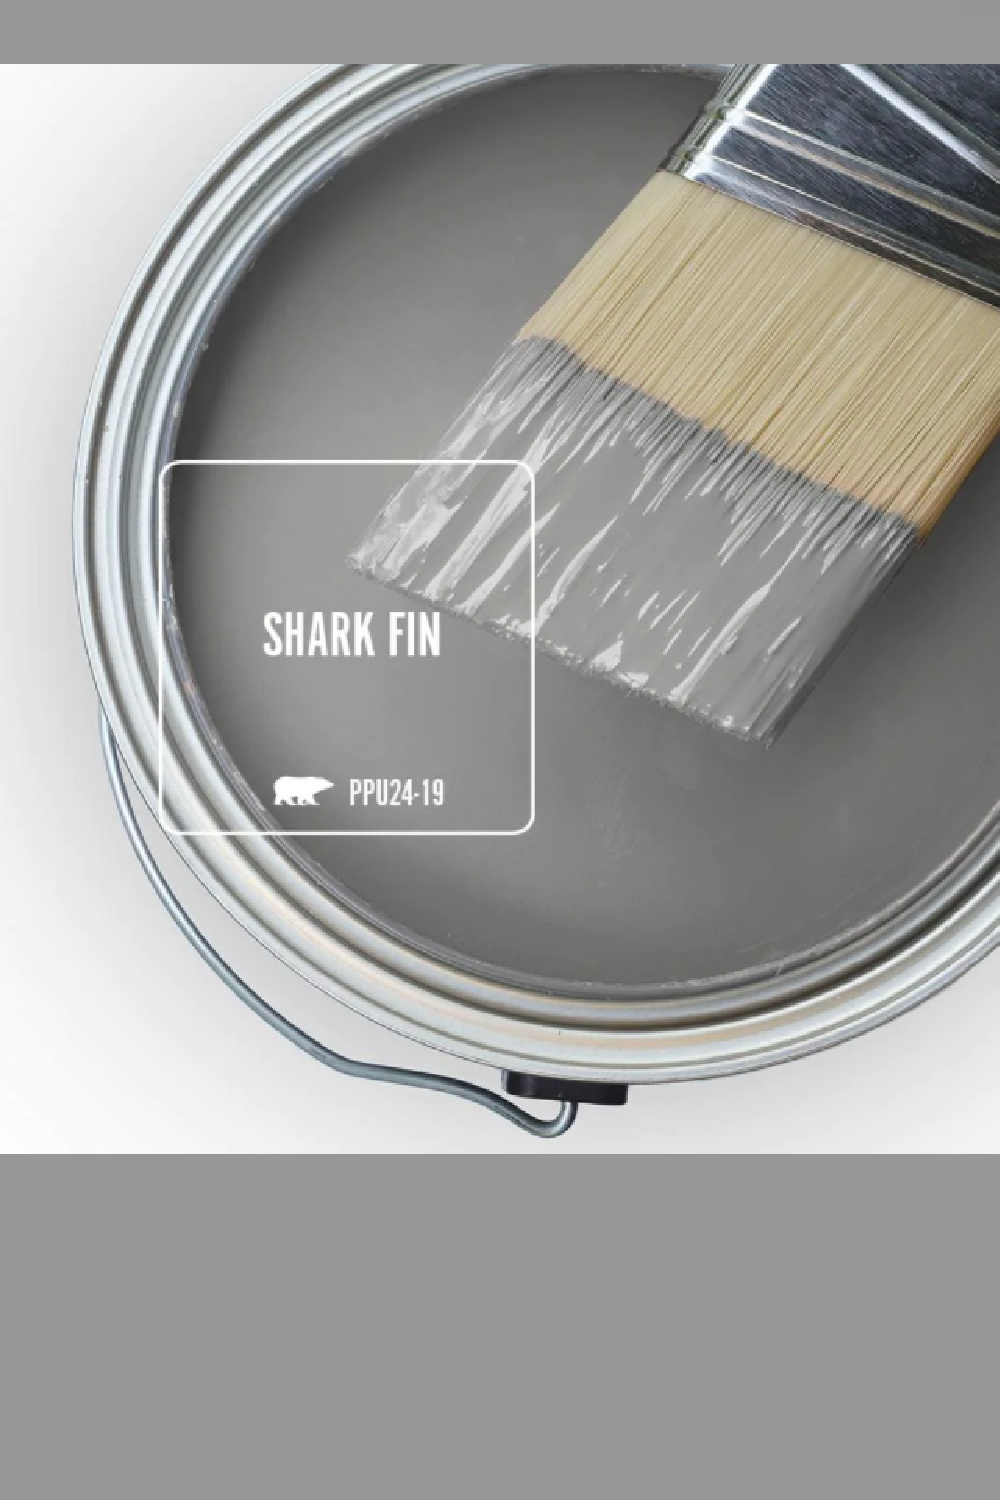 Shark Fin (Behr) gray paint color swatch. #sharkfin #paintcolors #behrsharkfin #graypaintcolor